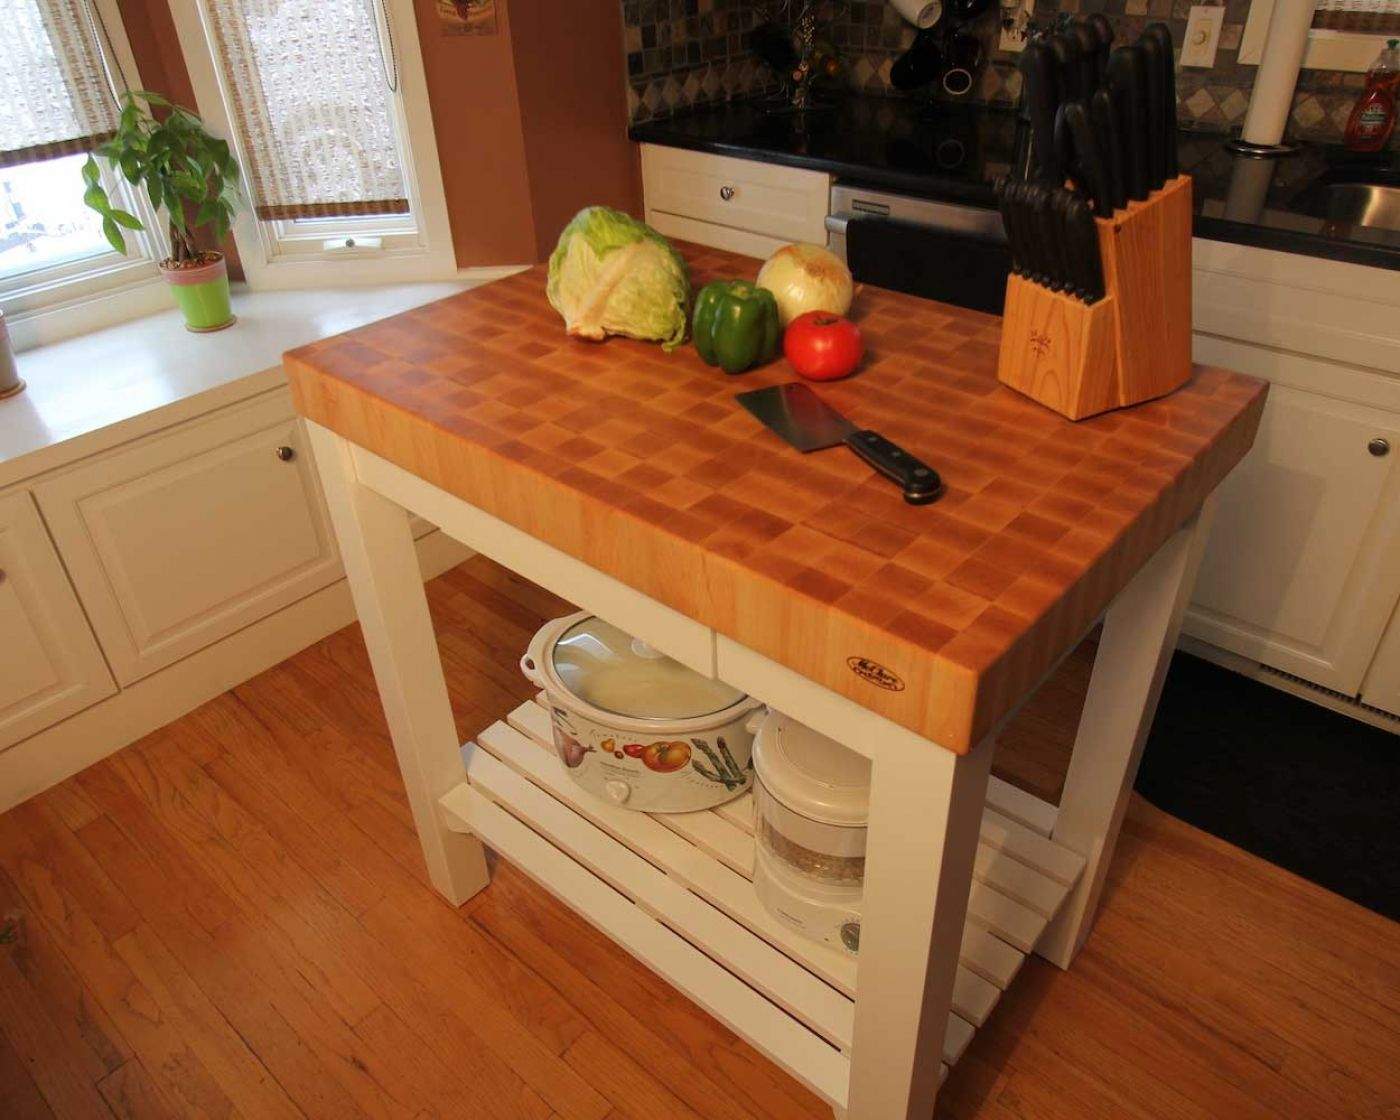 Butcher Block Chopping Block End Grain Carts Mcclure Block Butcher Block And Hardwood Kitchen Counter Tops And Hardwood Kitchen Islands Butcher Block Choppin Kitchen Tops Home Decor Kitchen Kitchen Cart